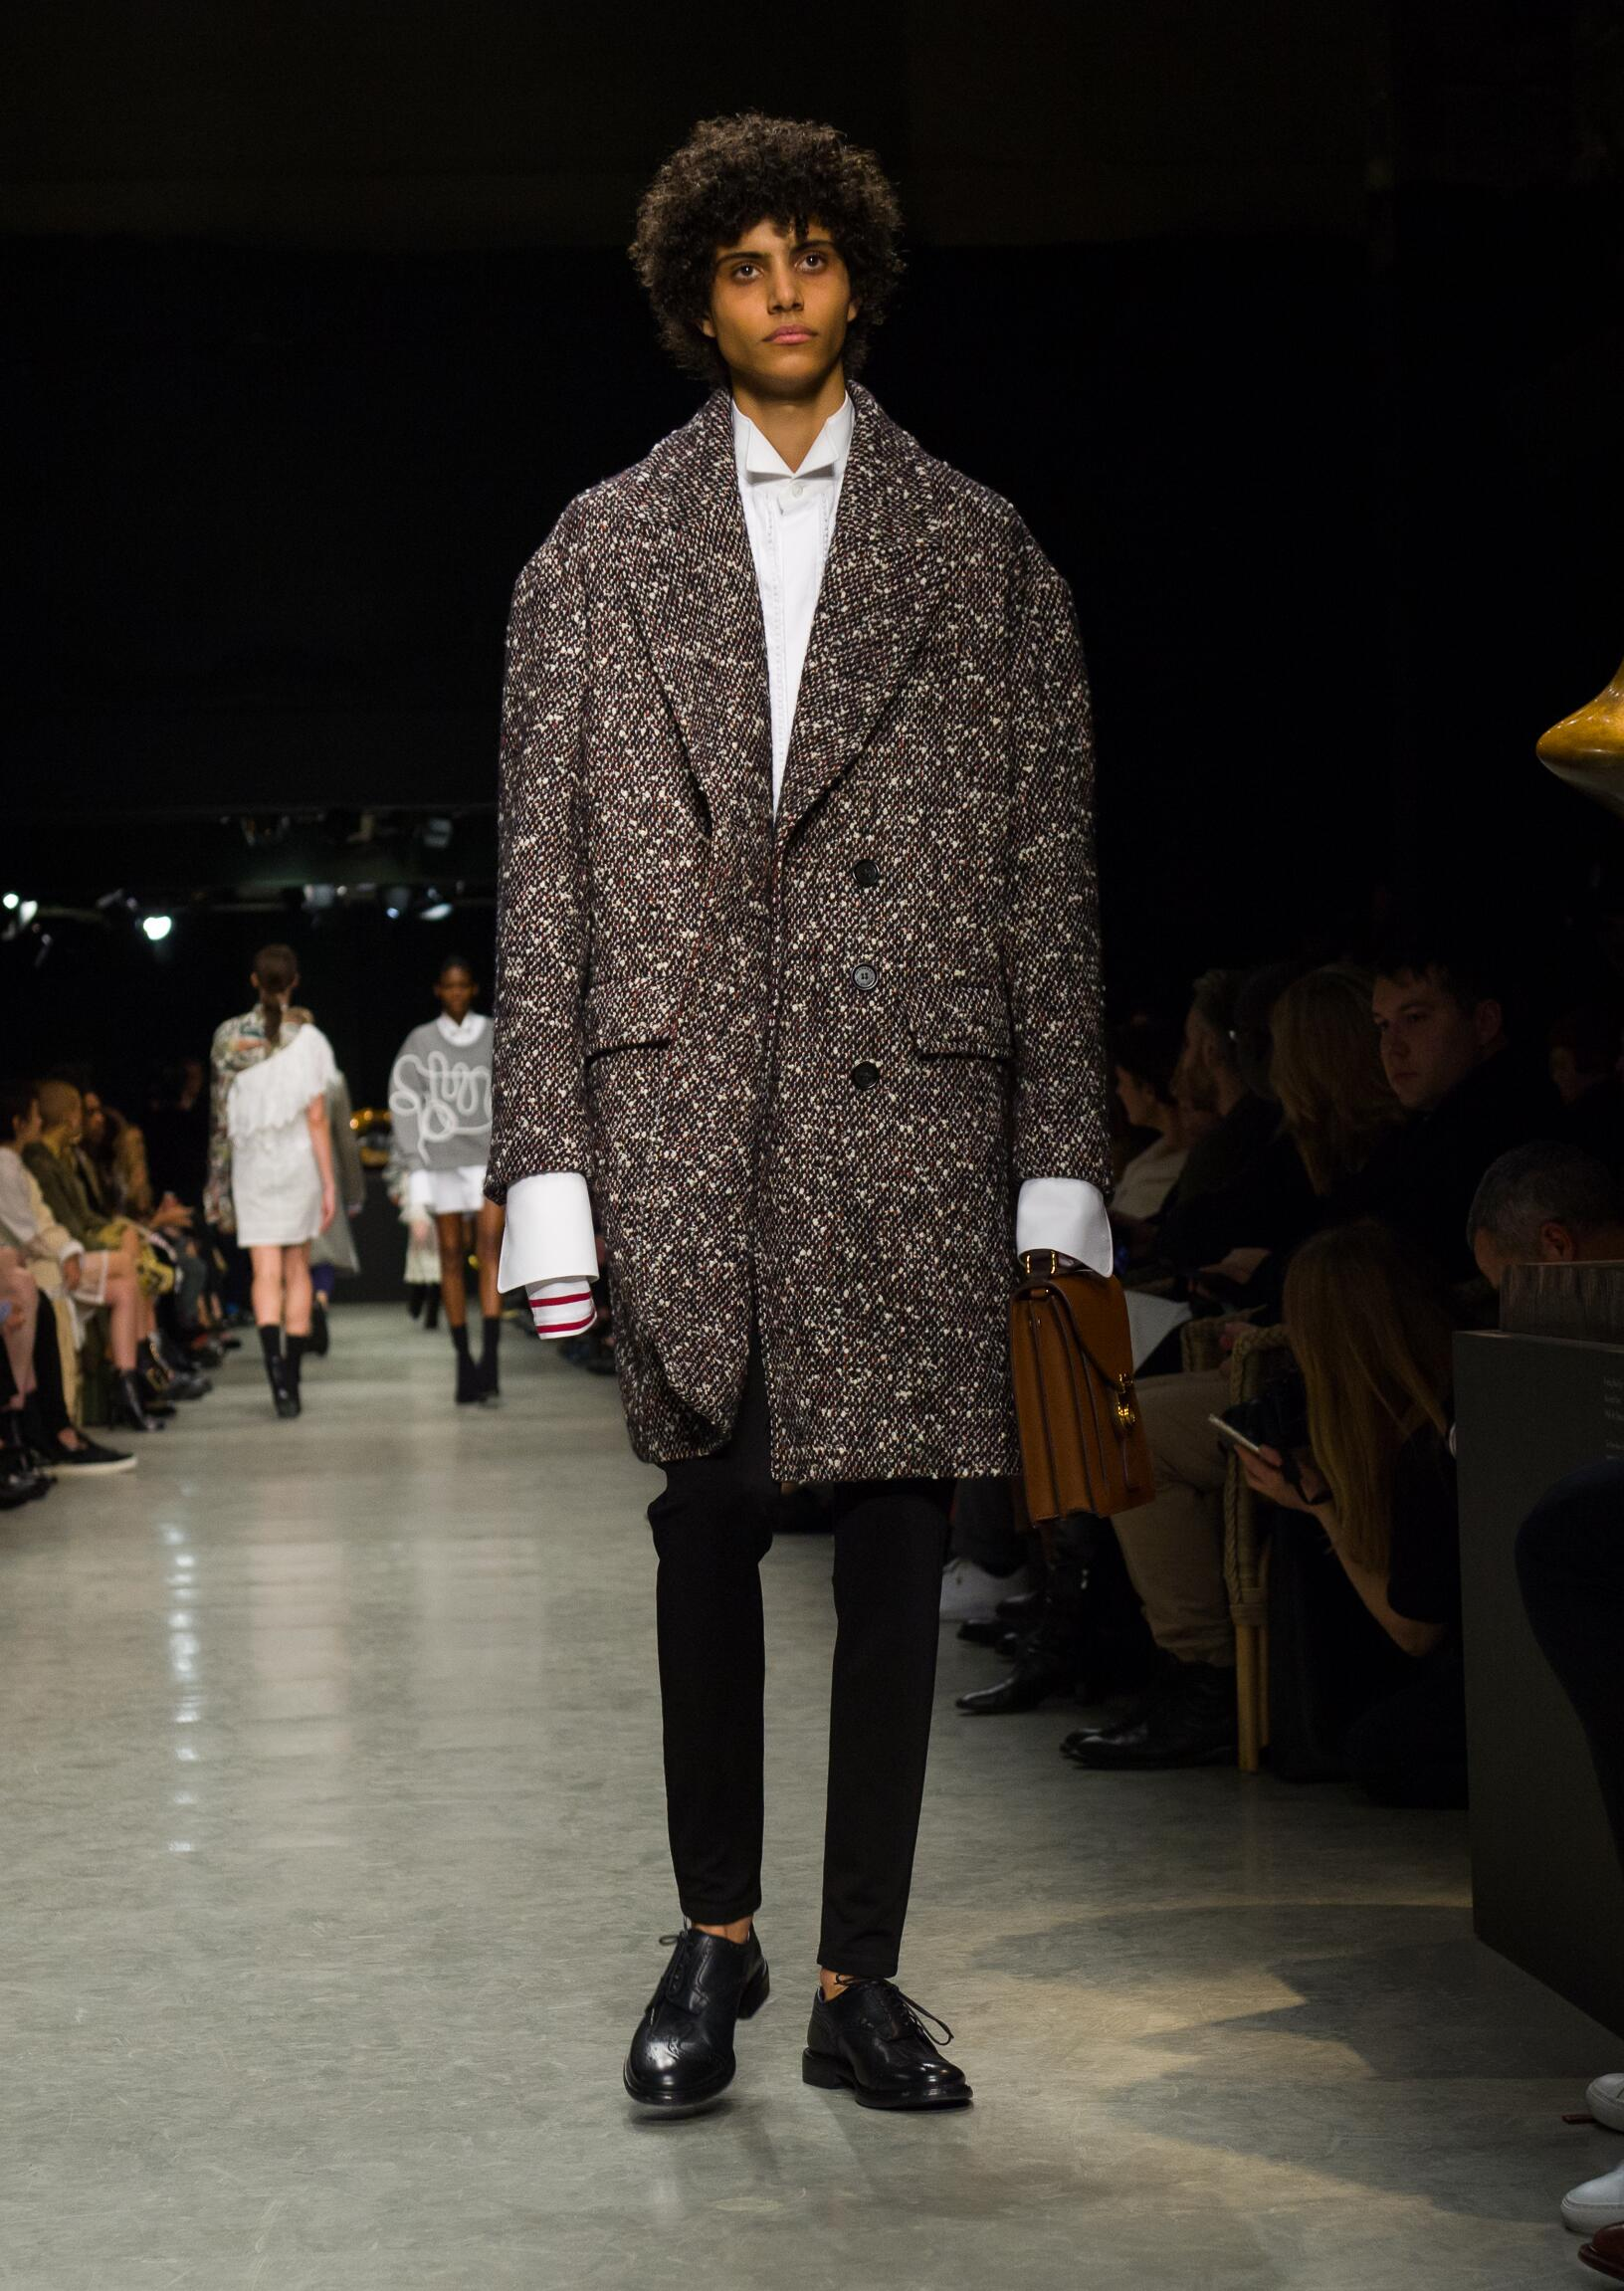 Burberry Fall 2018 Catwalk Menswear